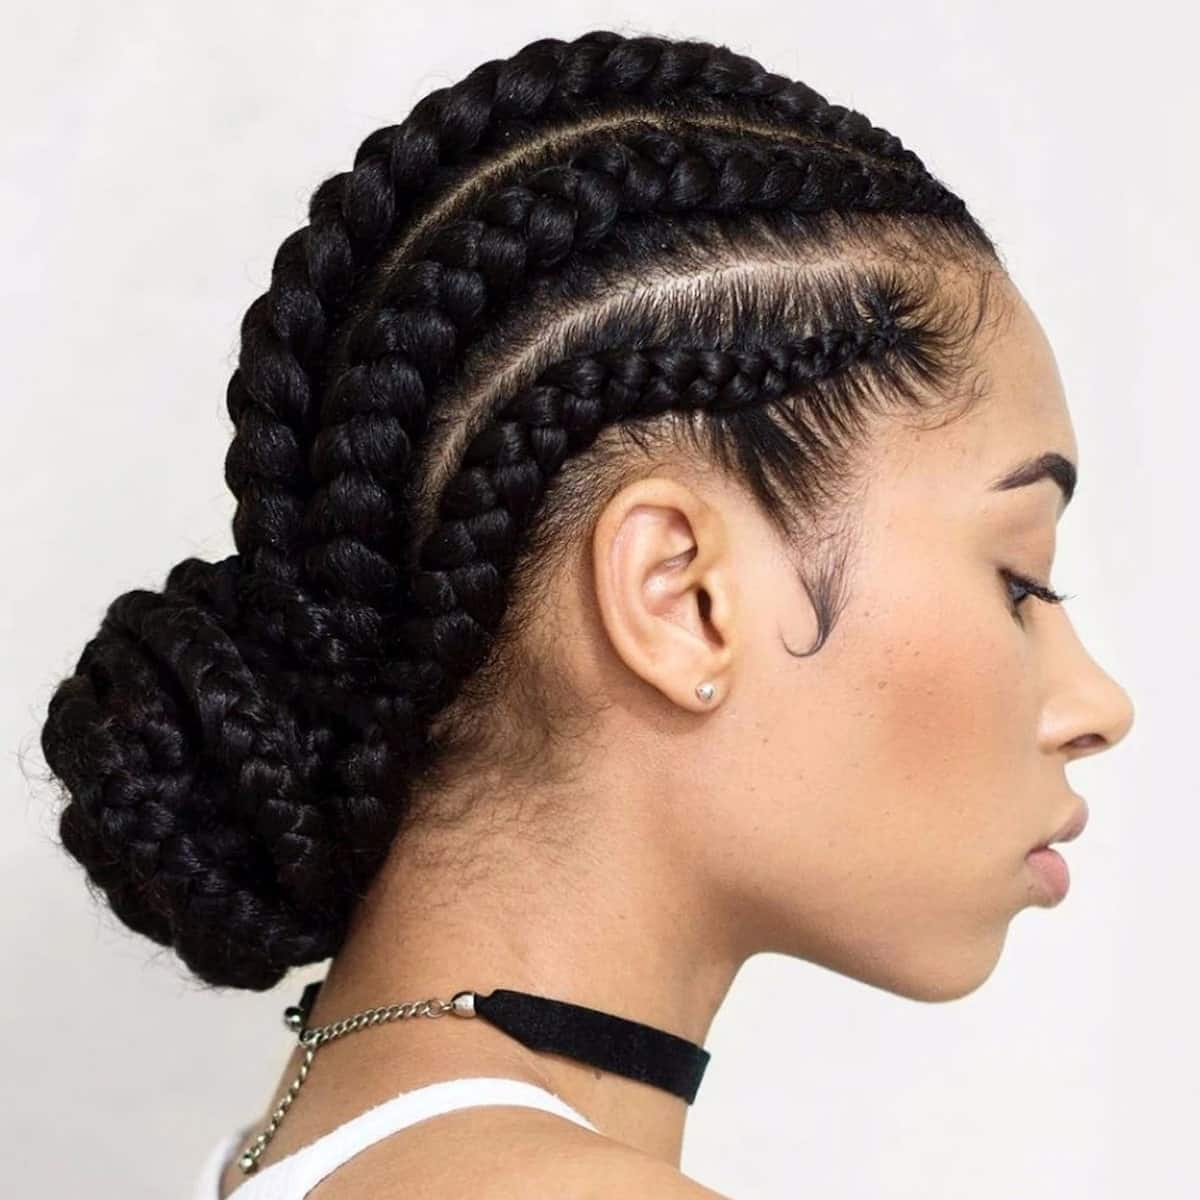 Cute braids cornrow styles for round faces YENCOMGH